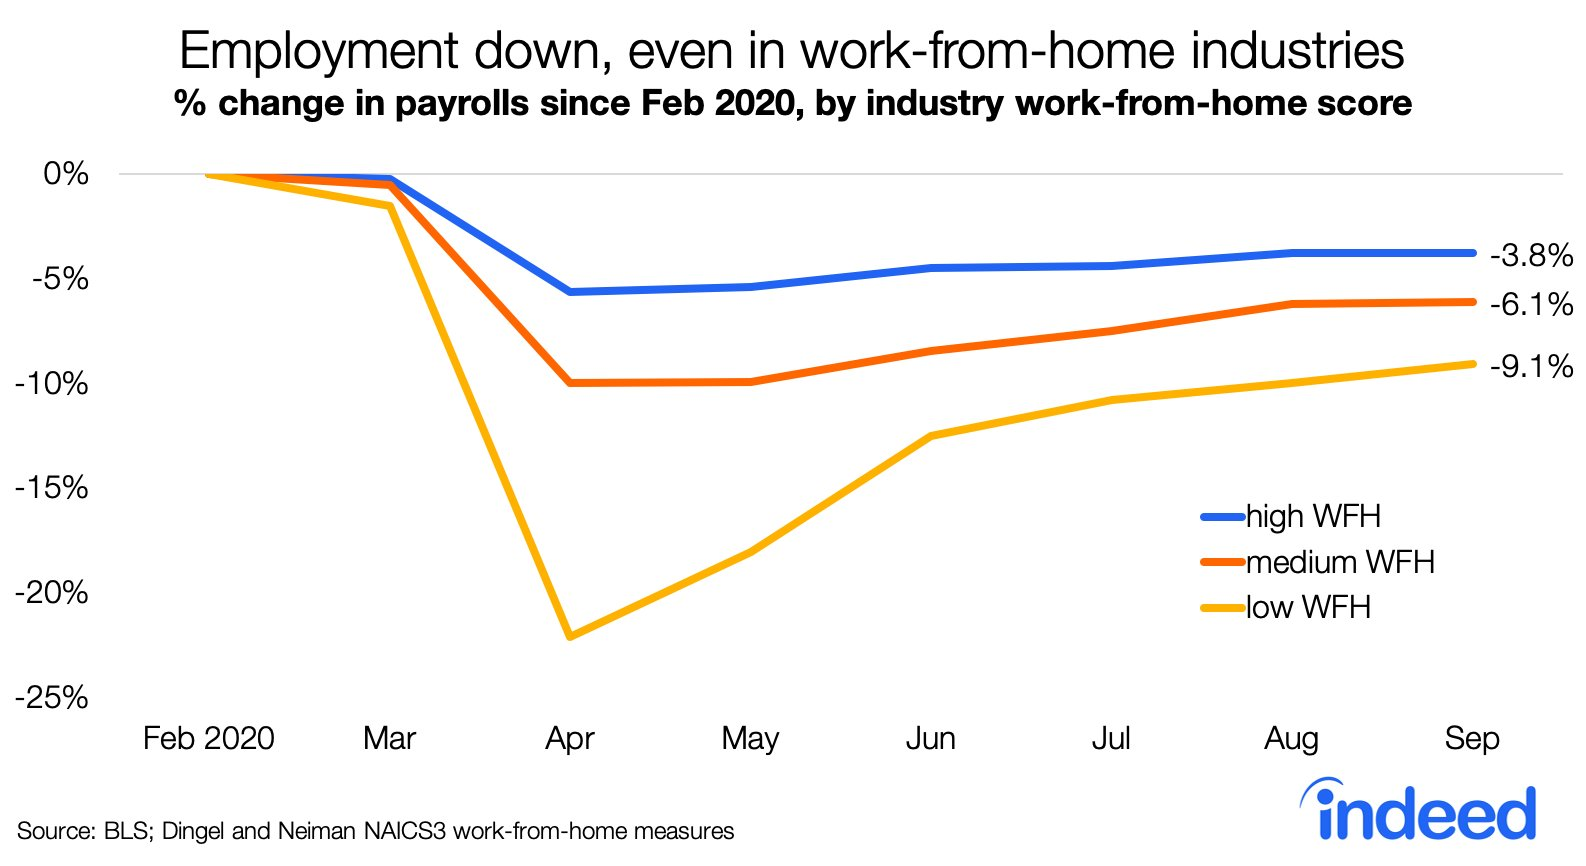 The disparity in high work-from-home vs low WFH unemployment